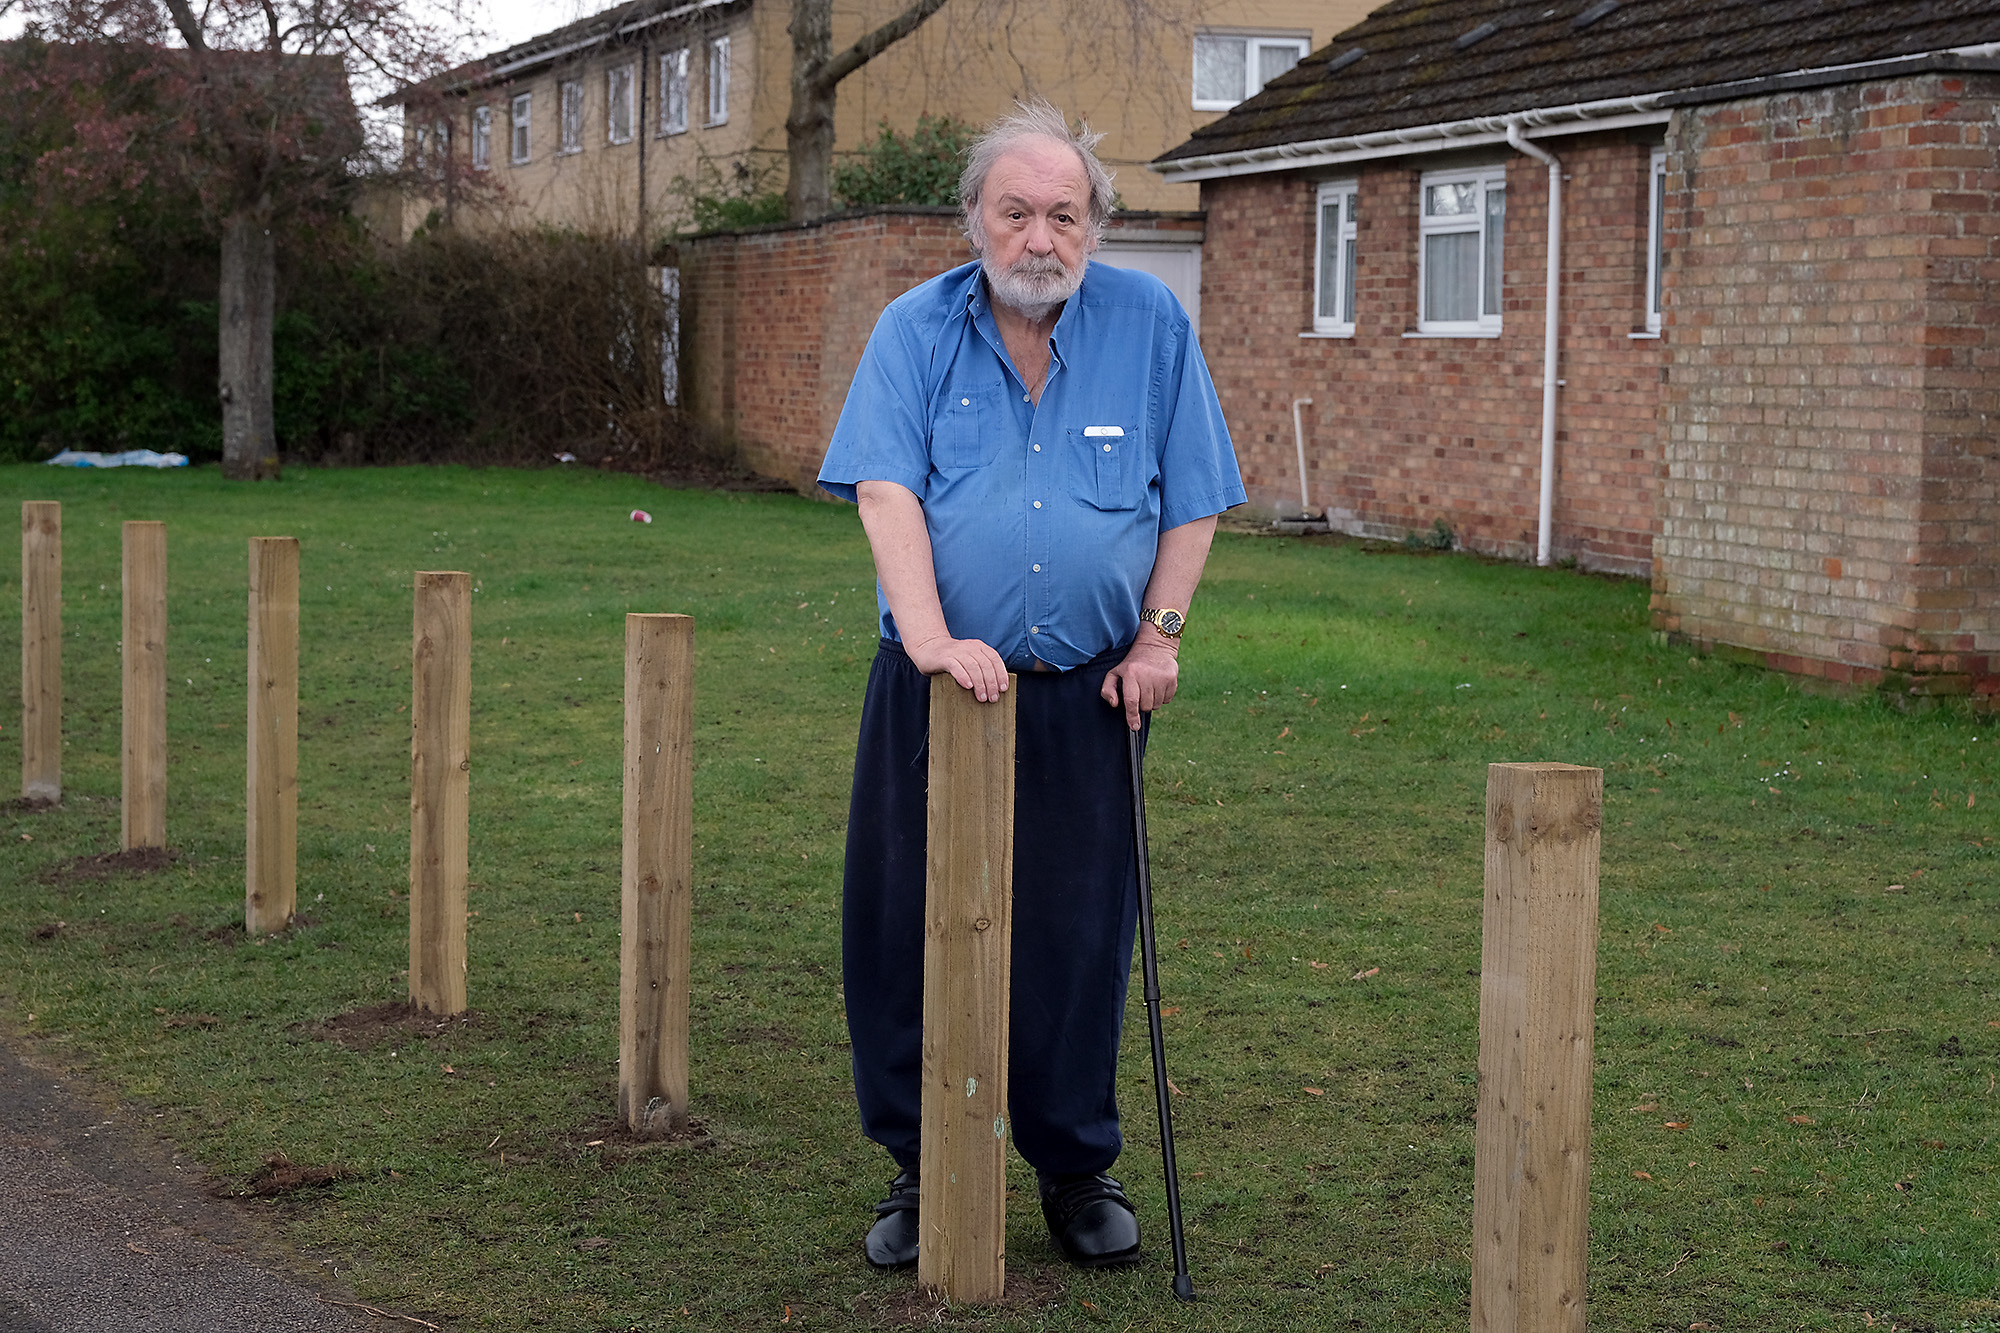 Bollards Stop Parking: 80 year old David Baker outide his home in Abingdon where Sovereign Housing have put bollards on the grass outside his house where he used to park his car.